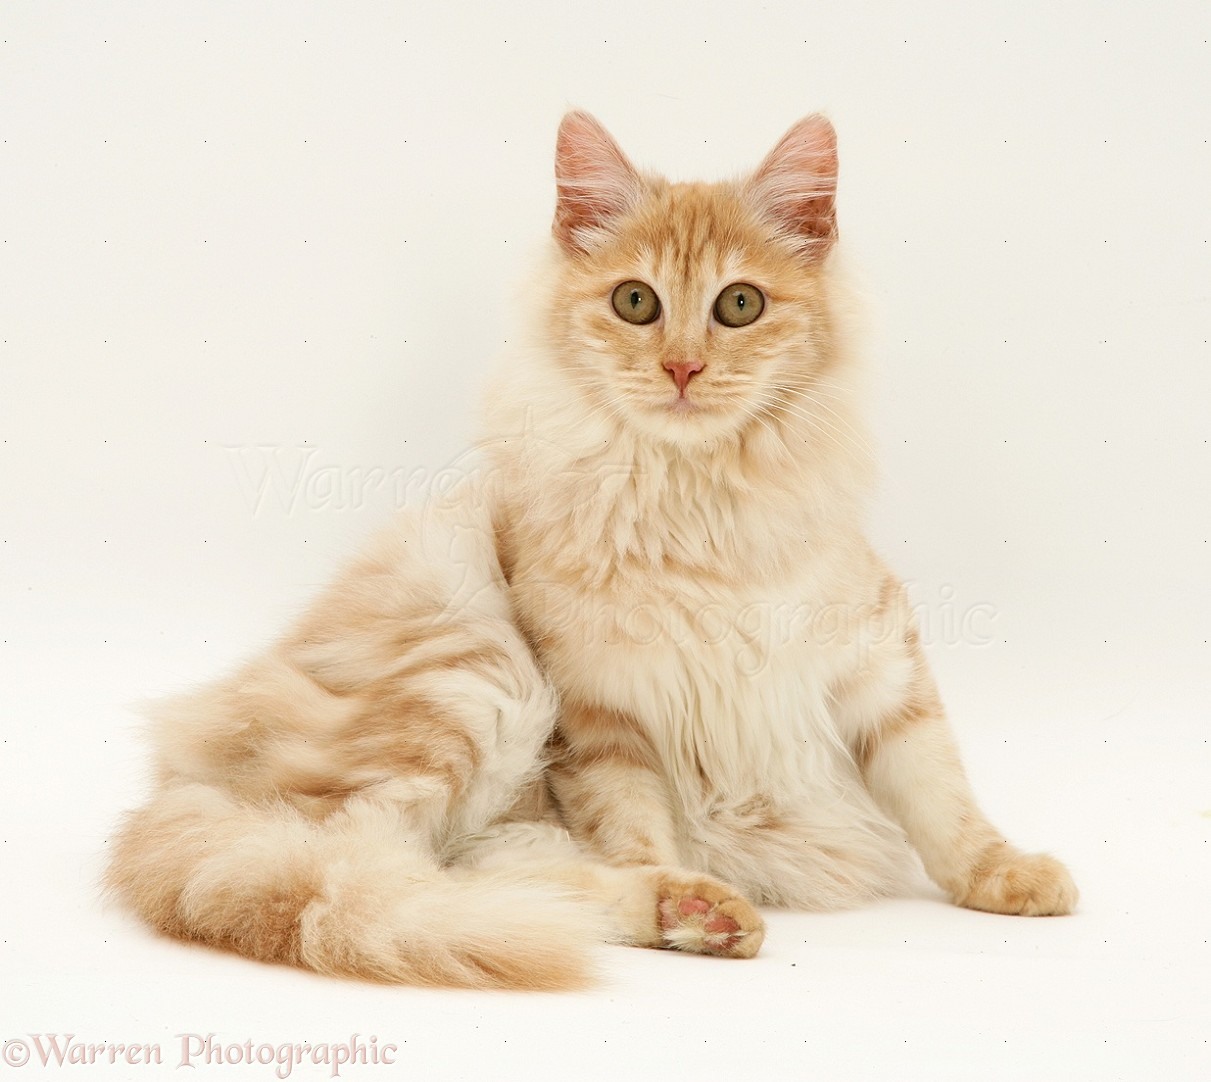 Red Silver Turkish Angora Cat Photo Wp13242